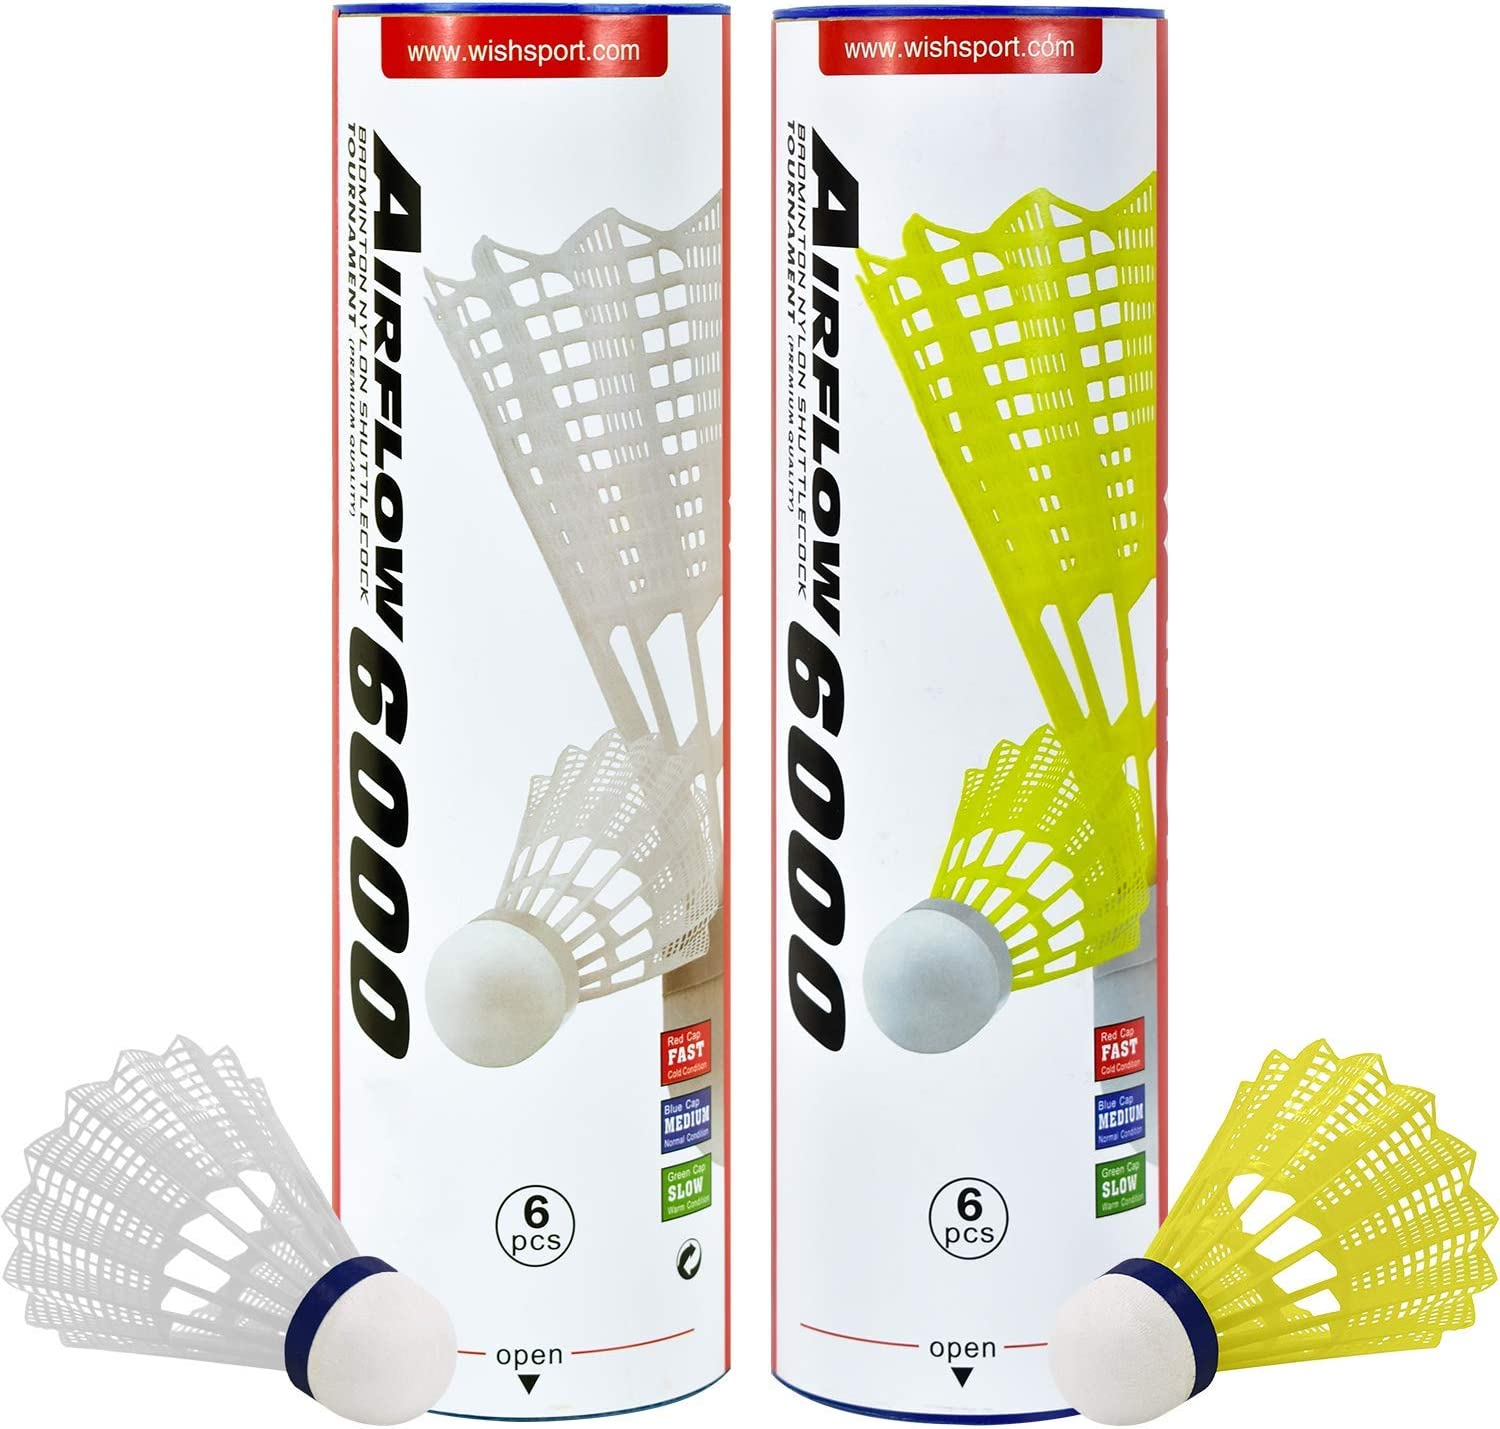 AirShuttles for outdoor Badminton 6 shuttles in 2 tube designed for AirBadminton